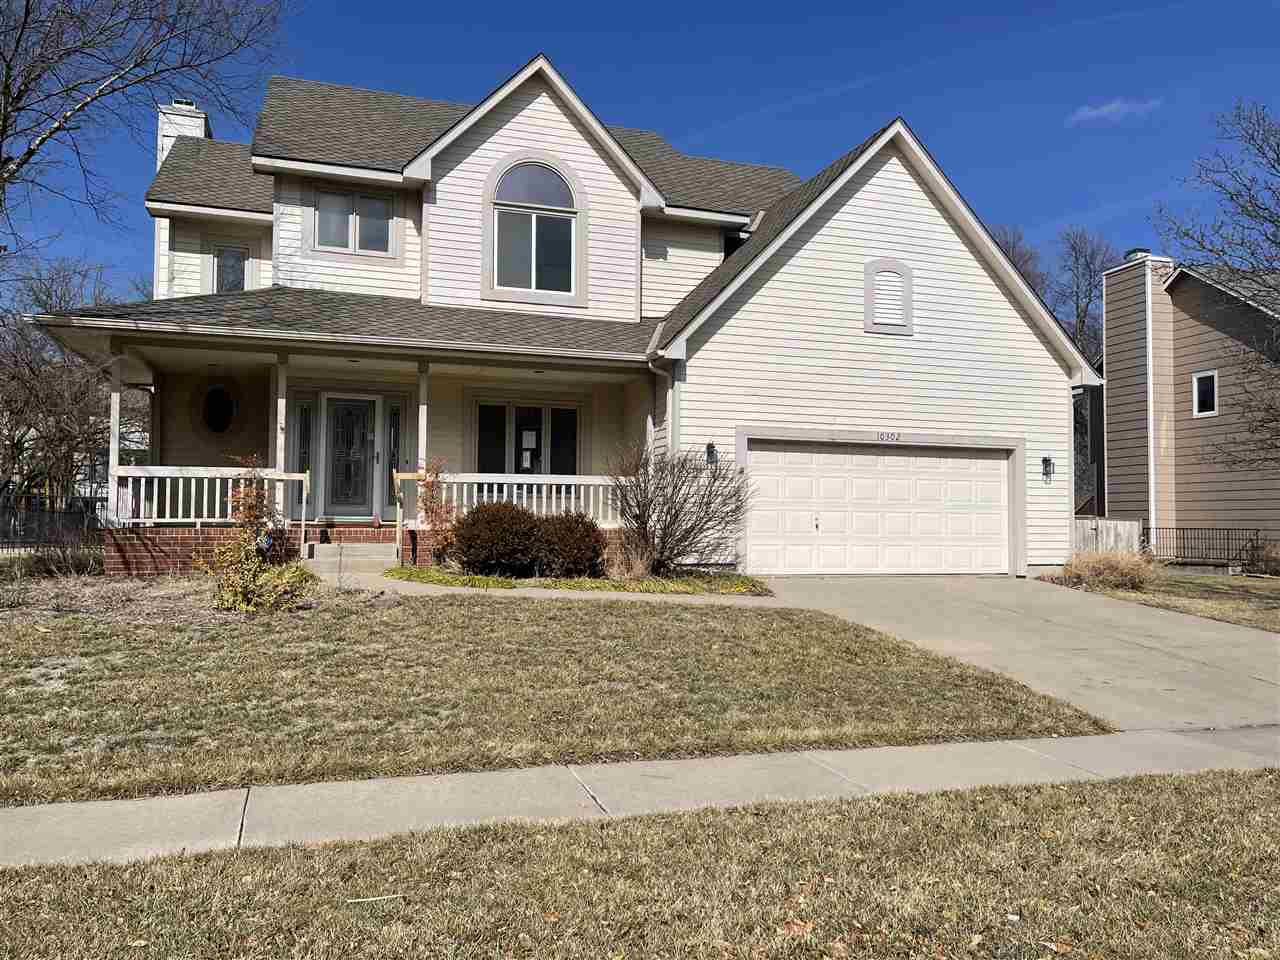 2-story home located in Tallgrass East subdivision.  Interior of home offers 5 bedrooms, 3.5 bathroo